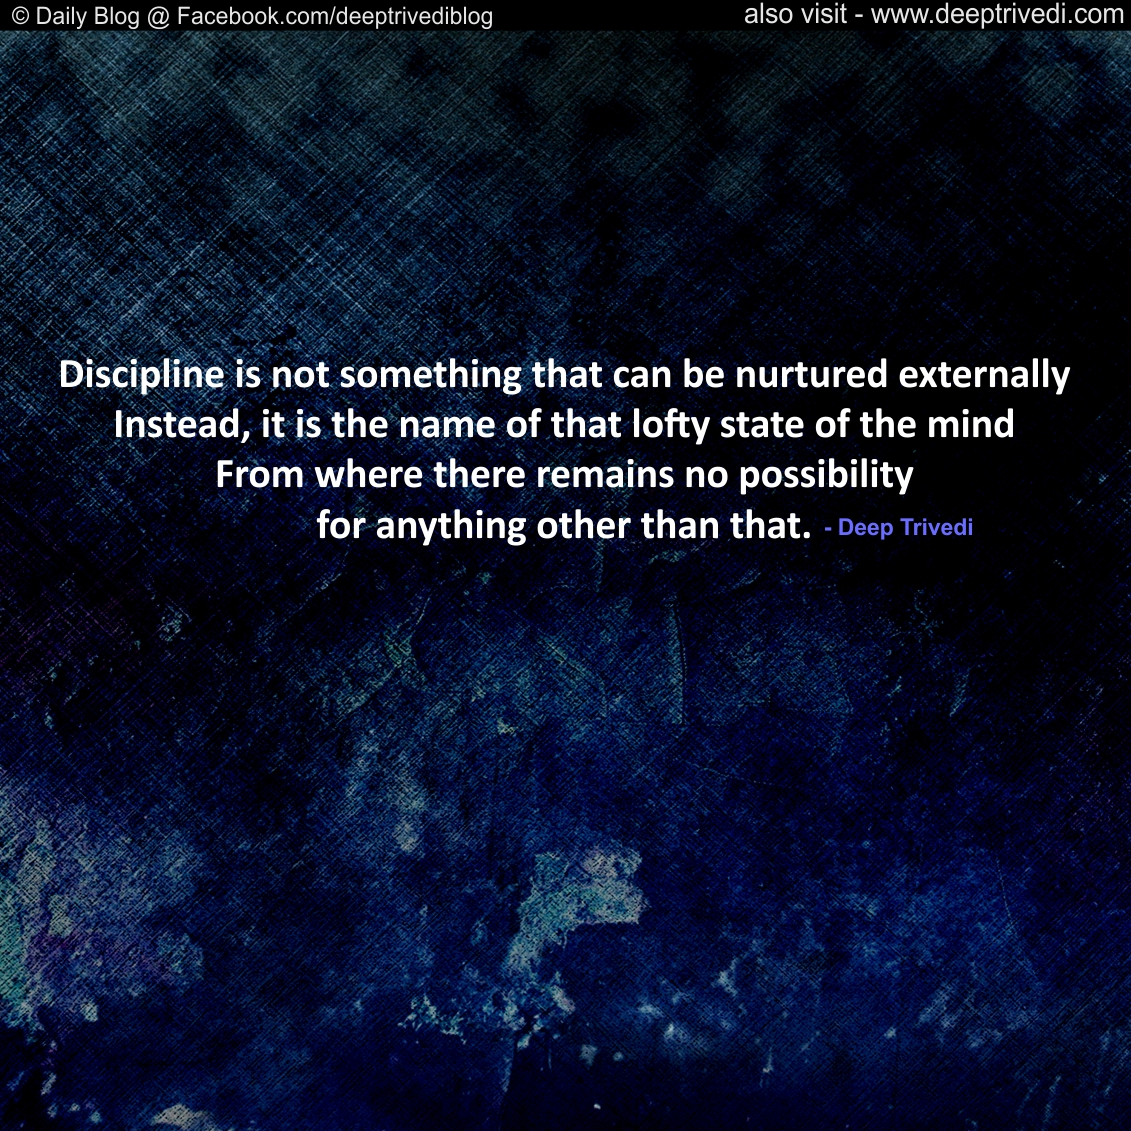 Discipline is not something that can be nurtured externally